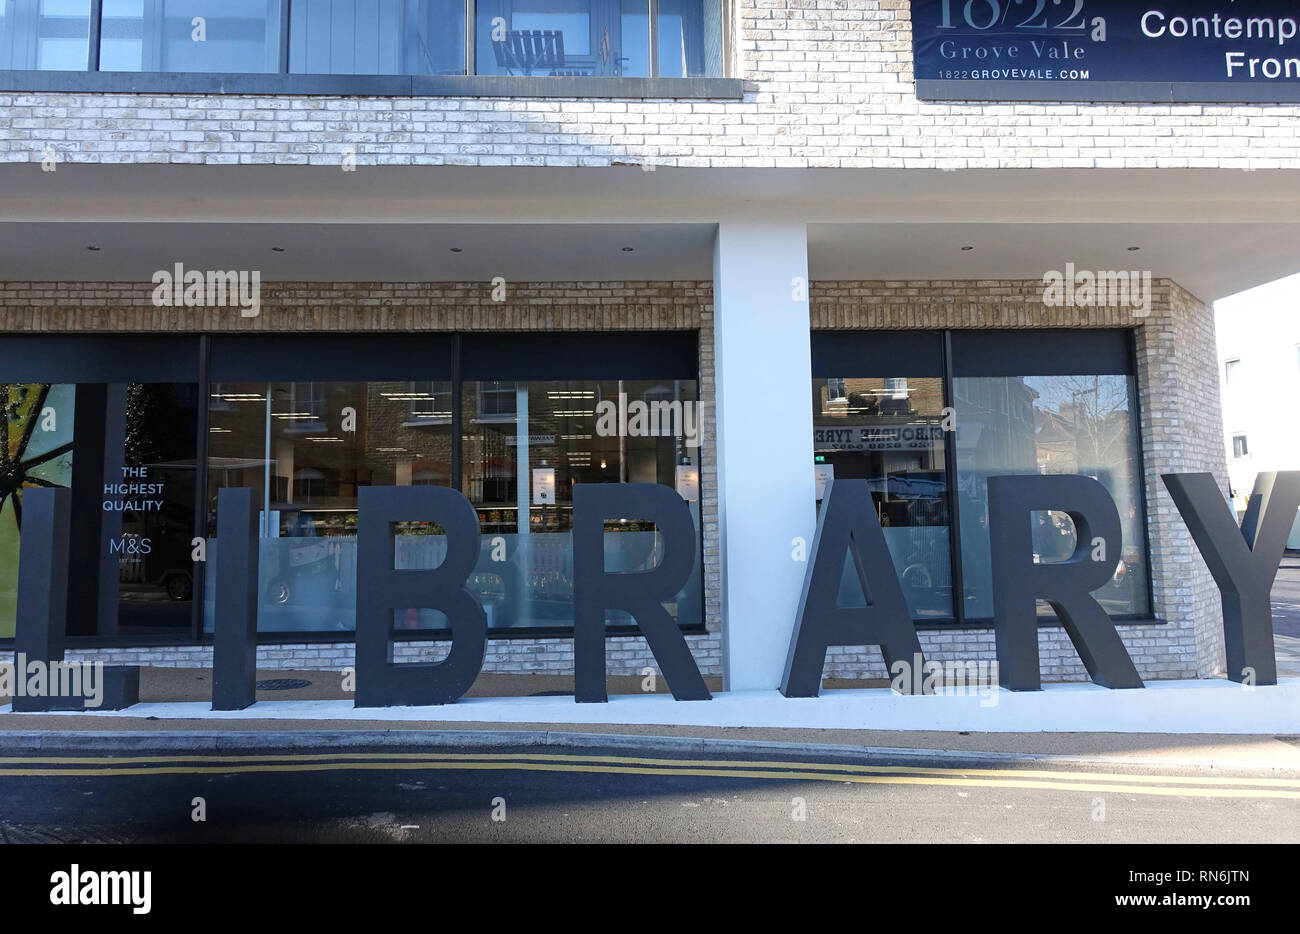 New library opened 2019 in modern development in East Dulwich, South London - Stock Image